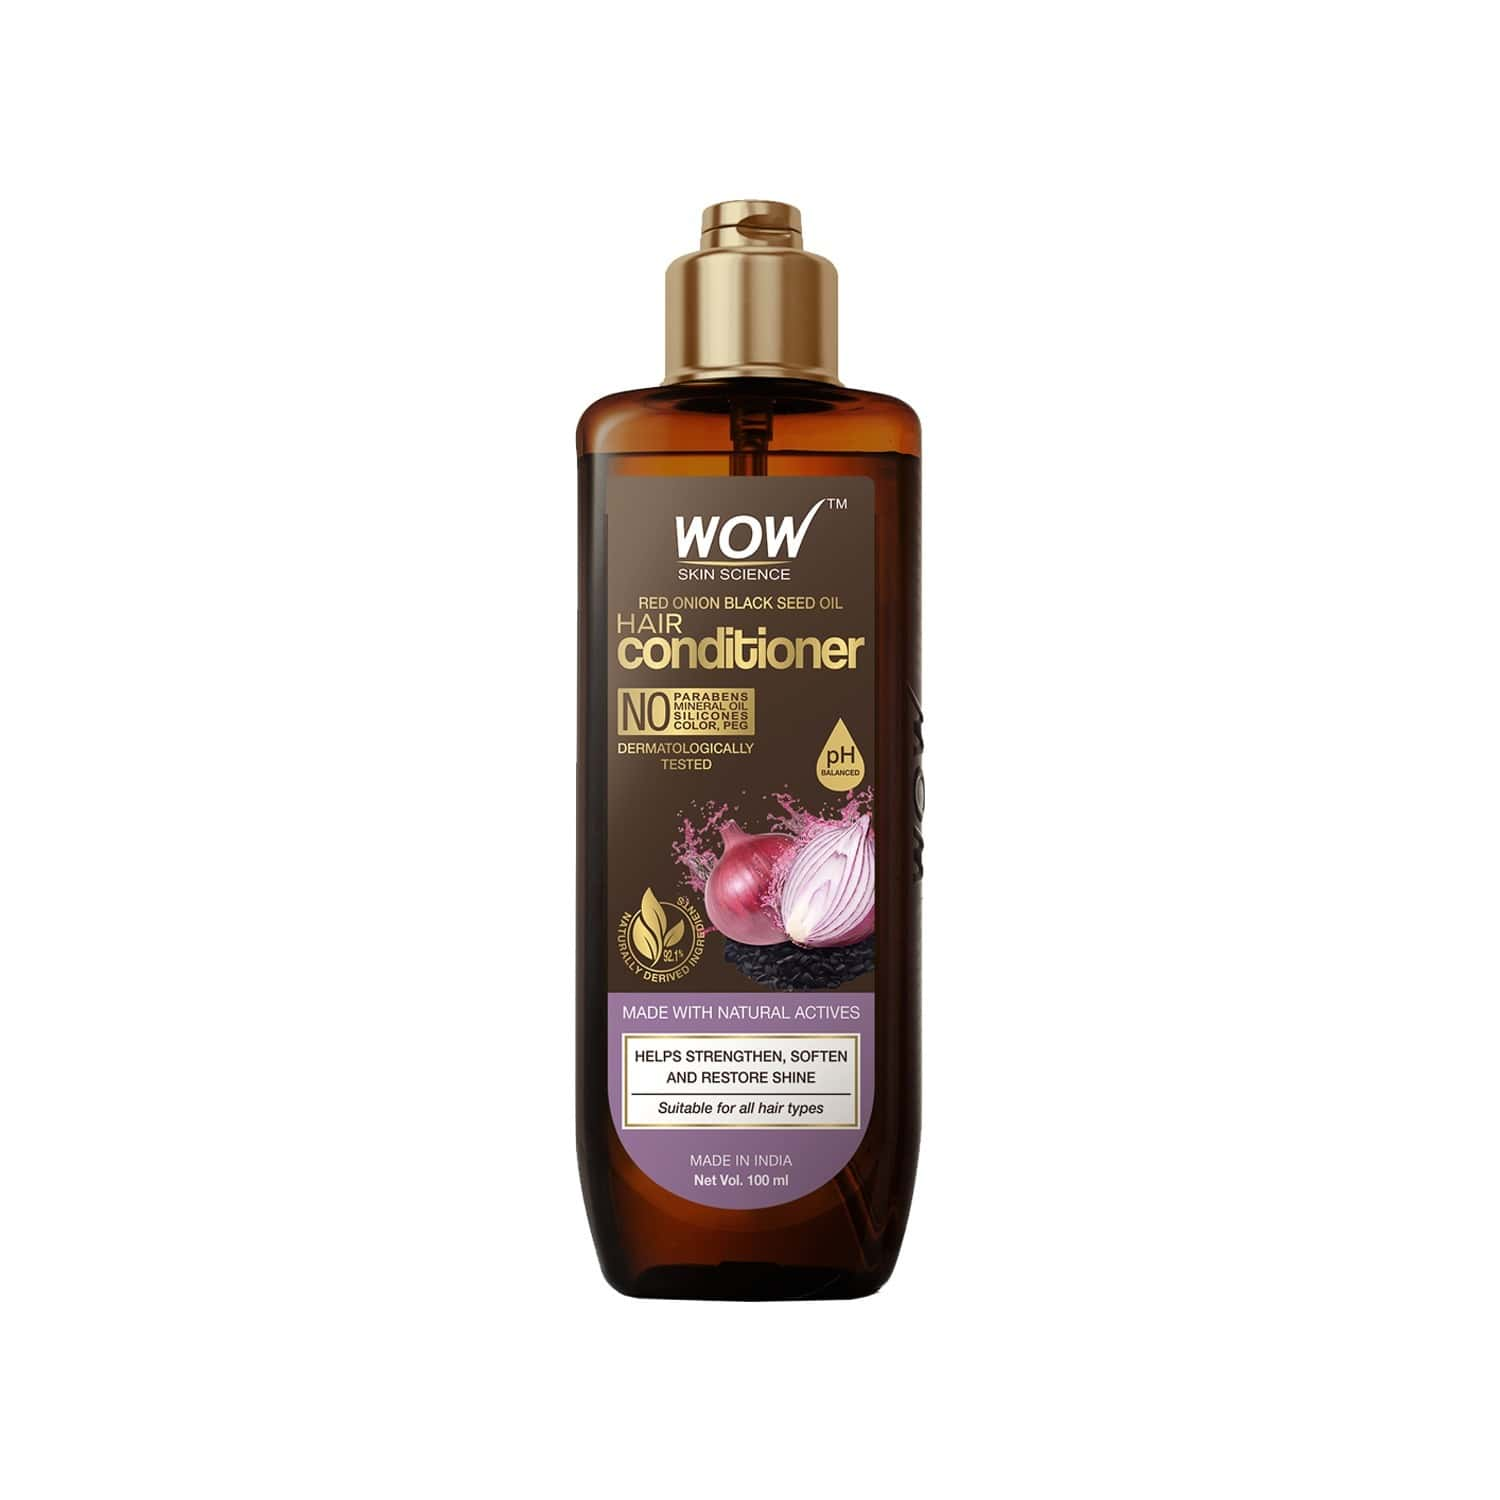 Wow Skin Science Red Onion Black Seed Oil Hair Conditioner - 100ml